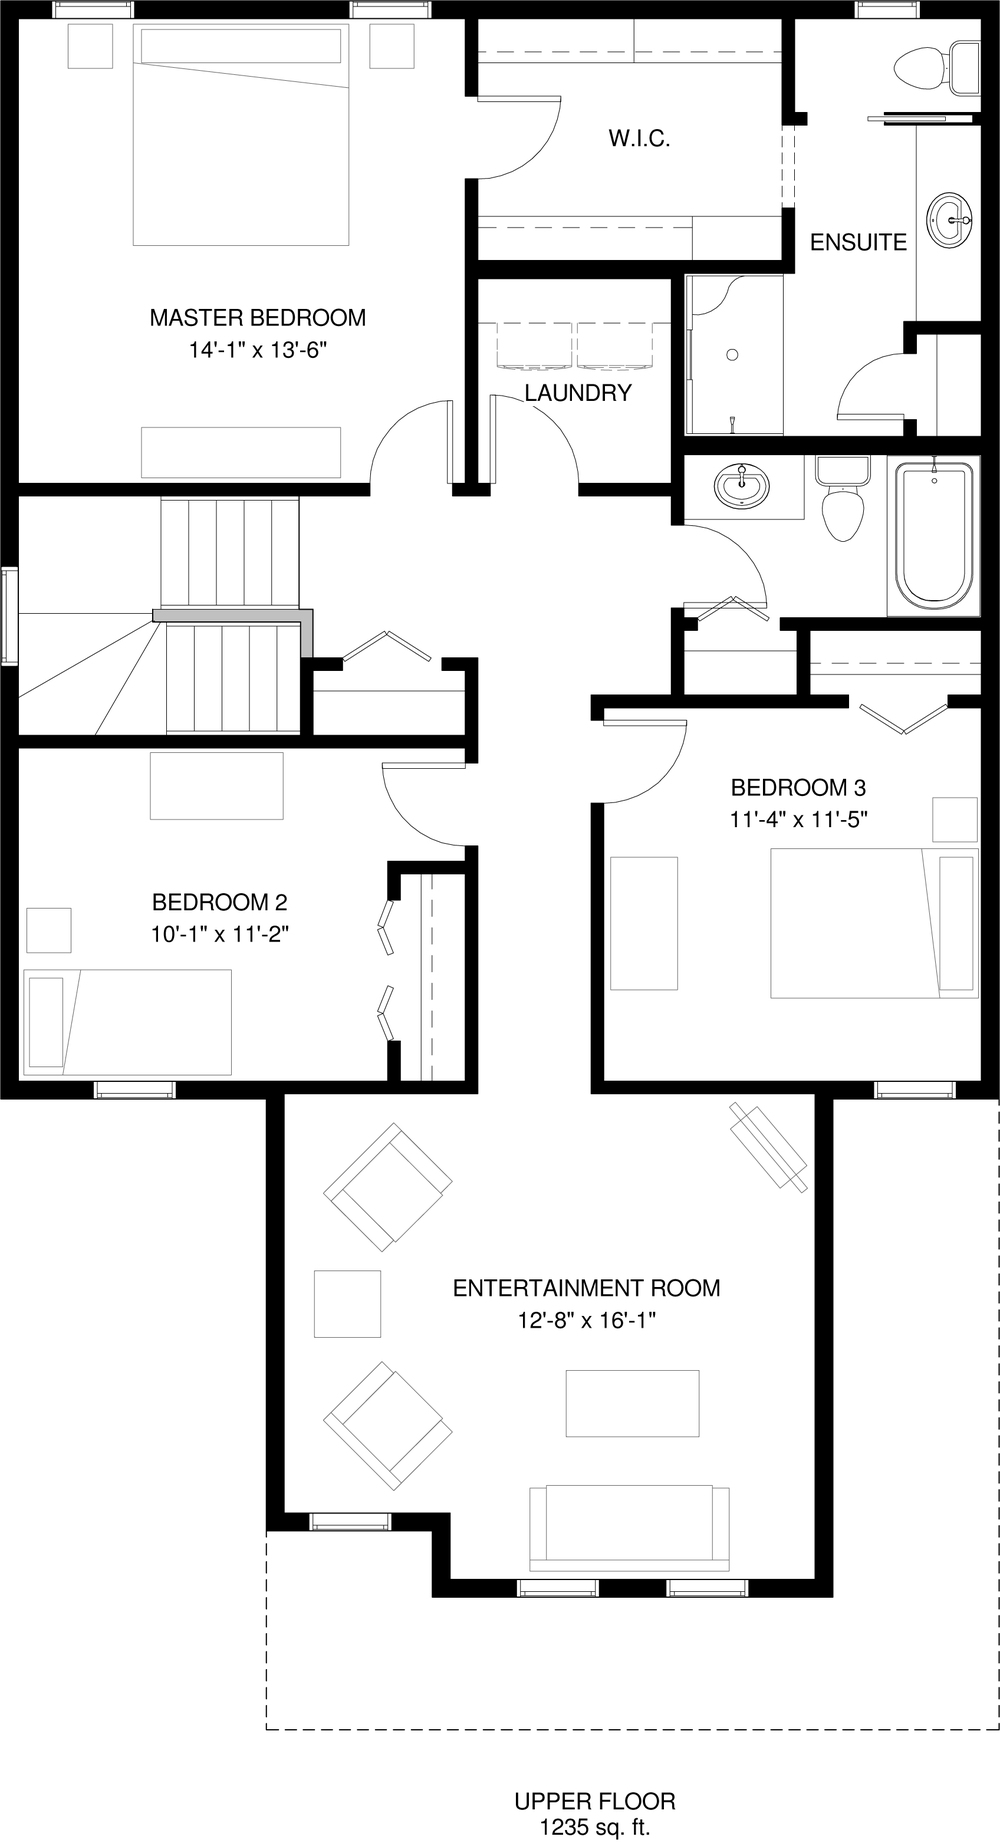 Upper Floor 1235 sq ft